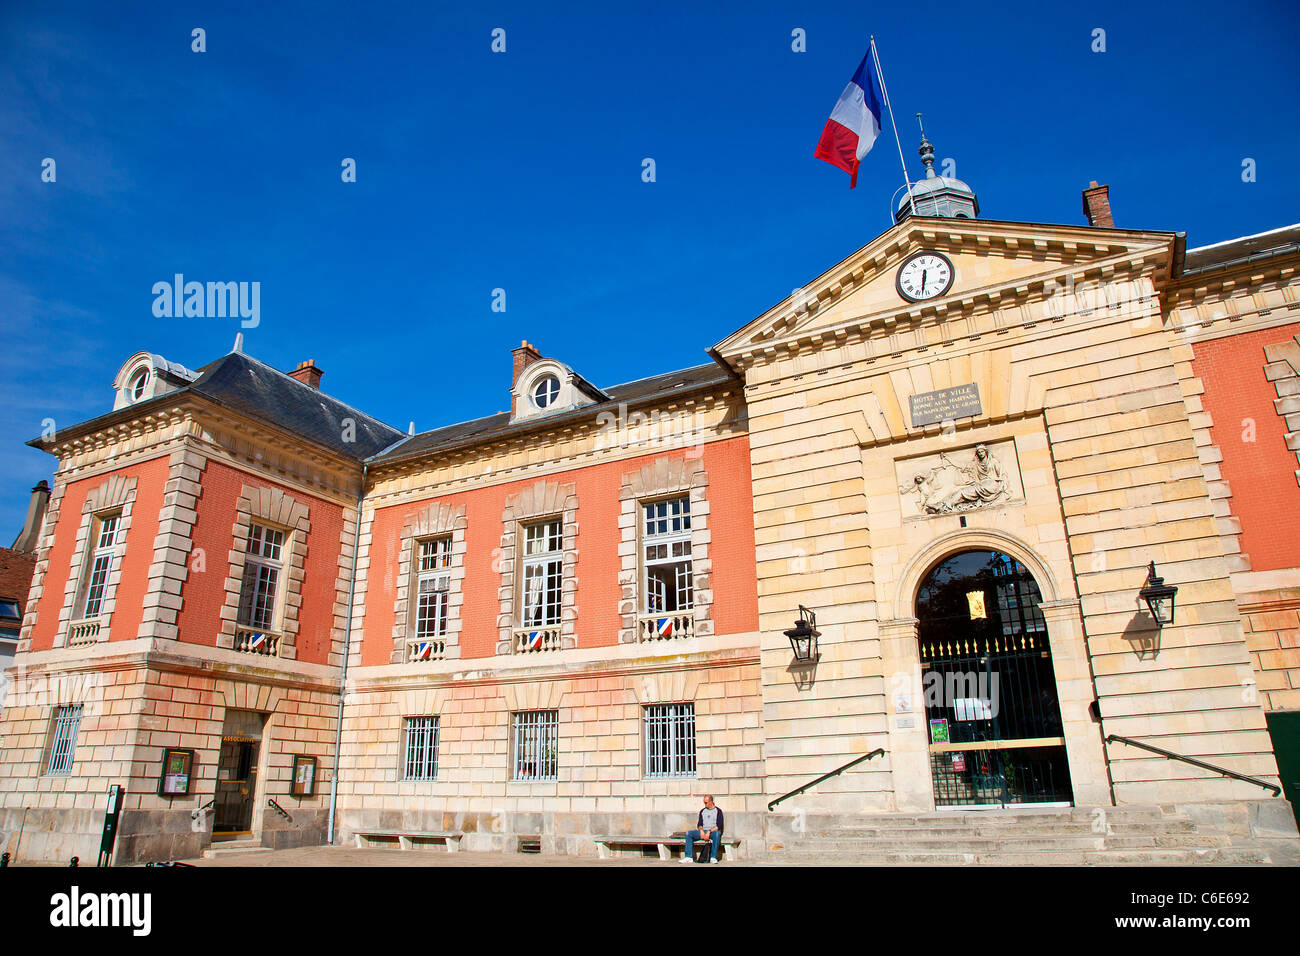 Rambouillet, City Hall - Stock Image